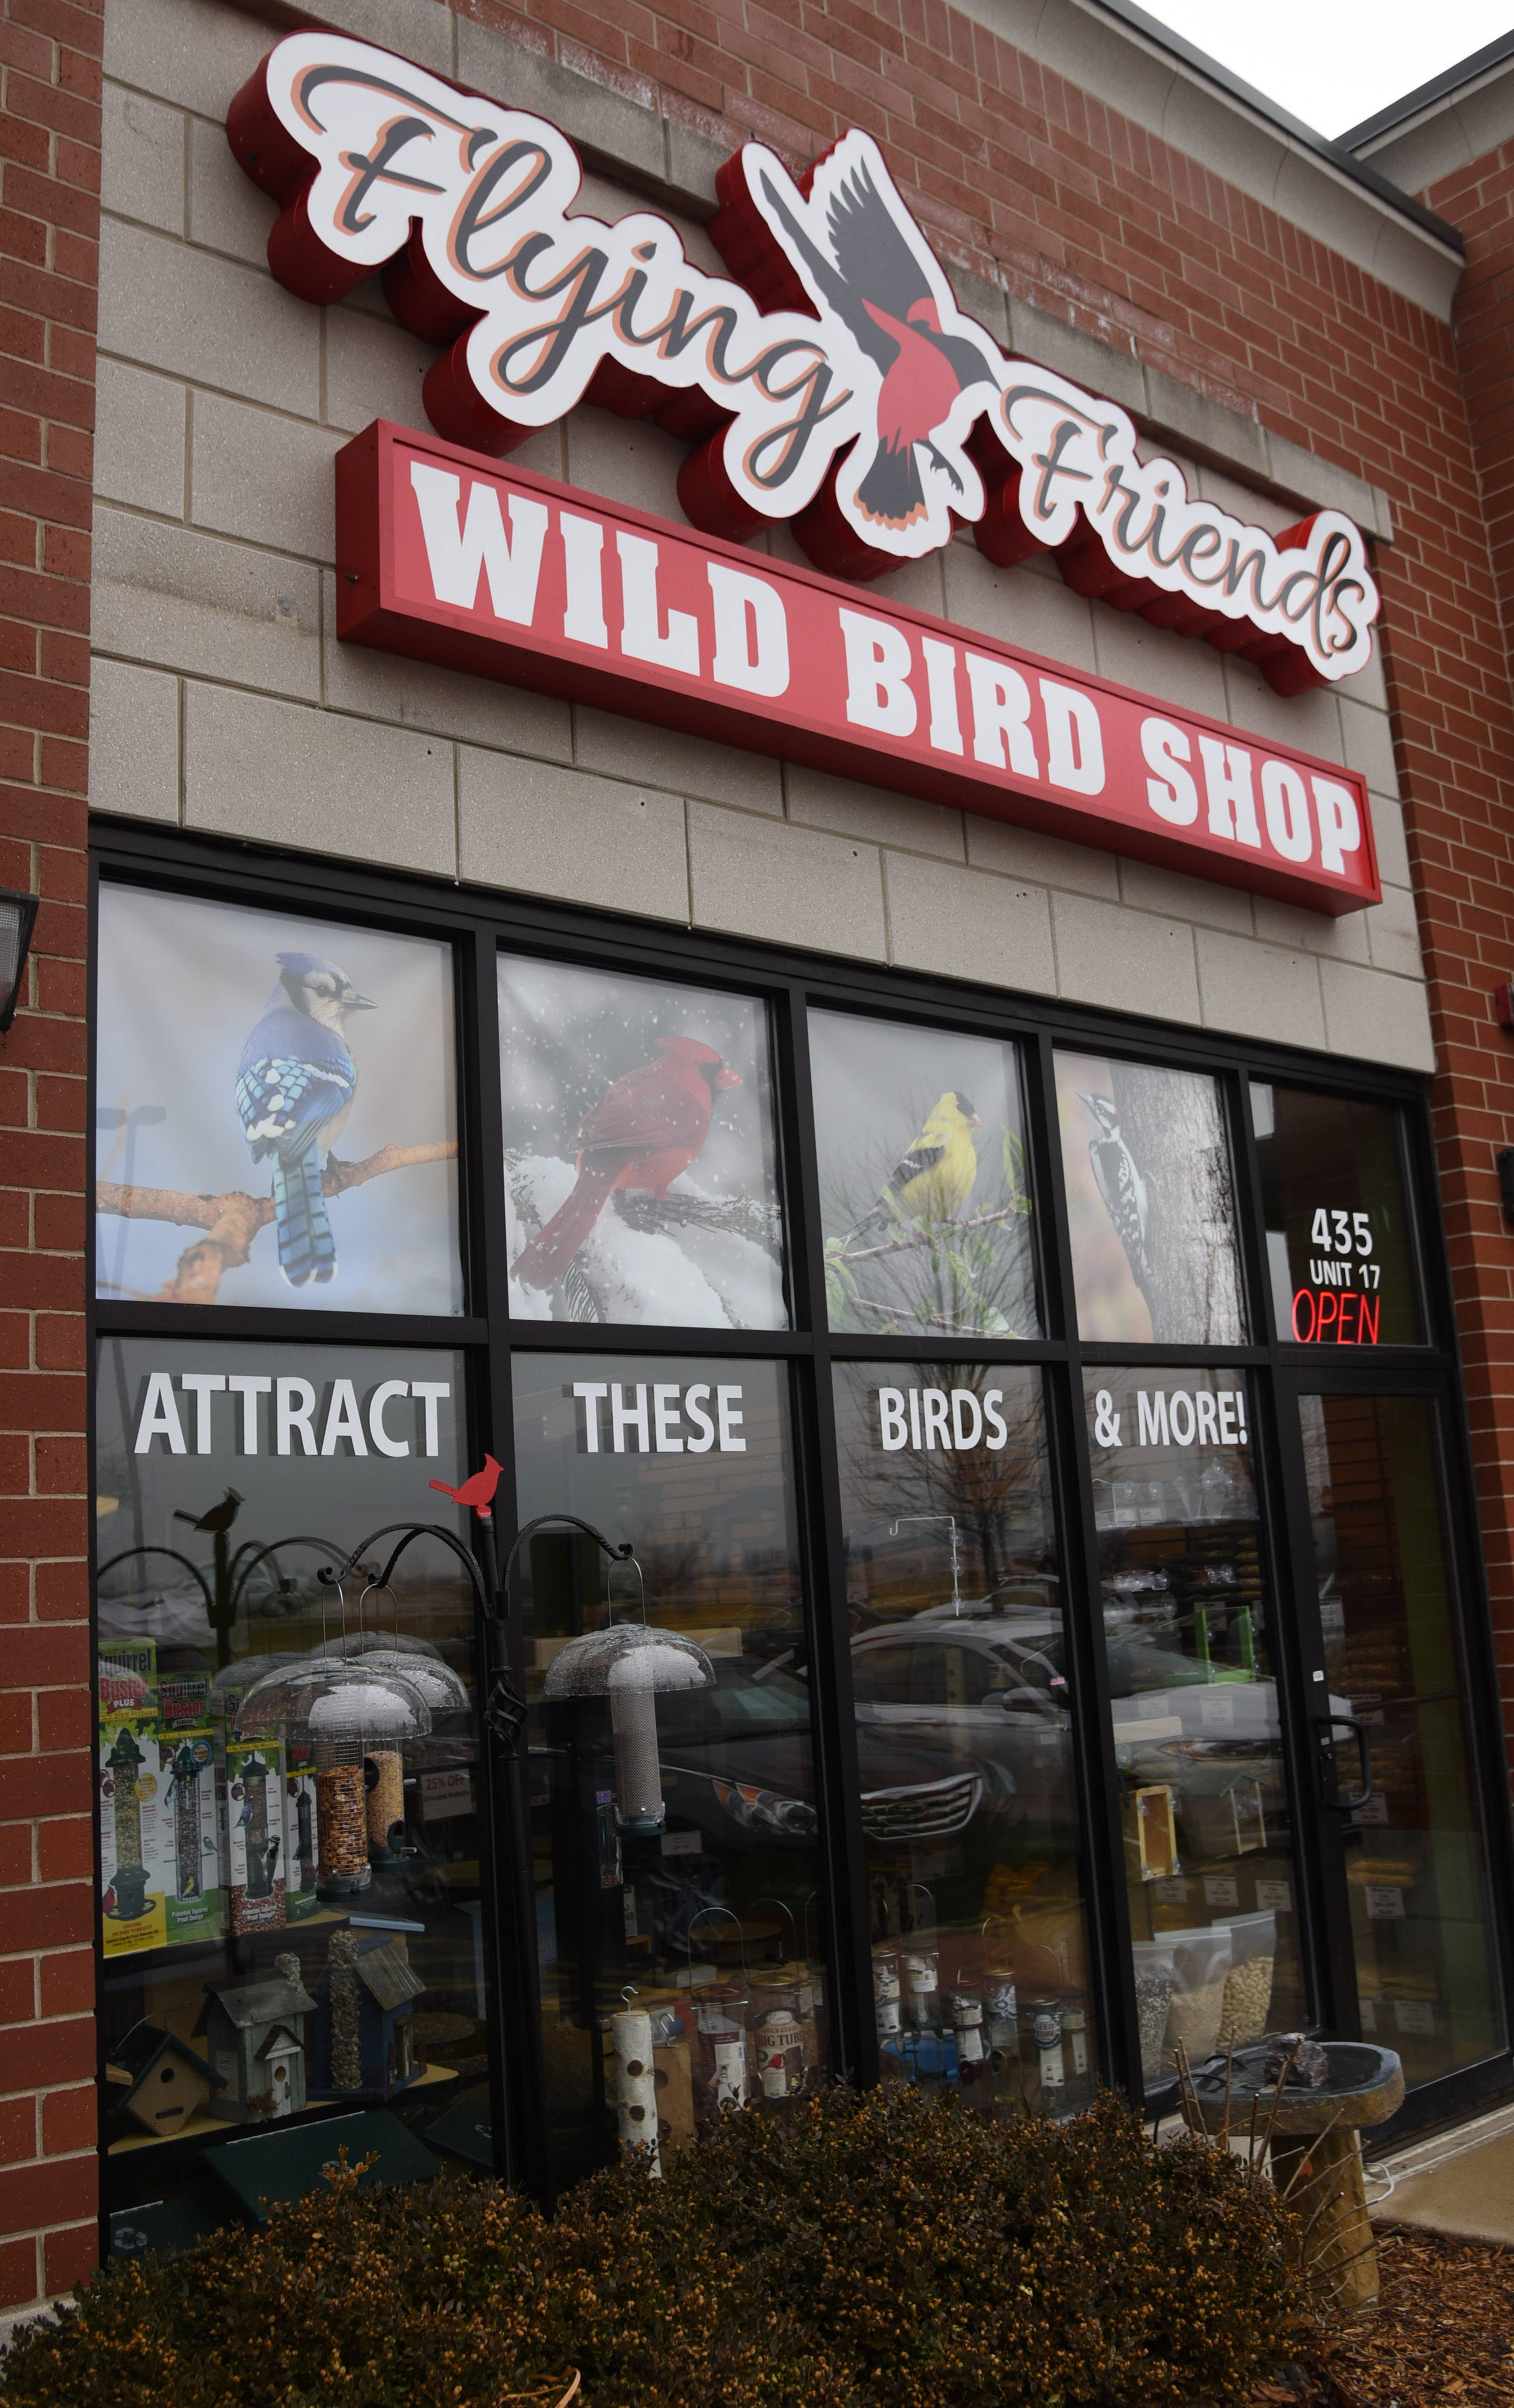 Flying Friends Wild Bird Shop is now open at 435 Angela Lane near Randall Road in Crystal Lake.